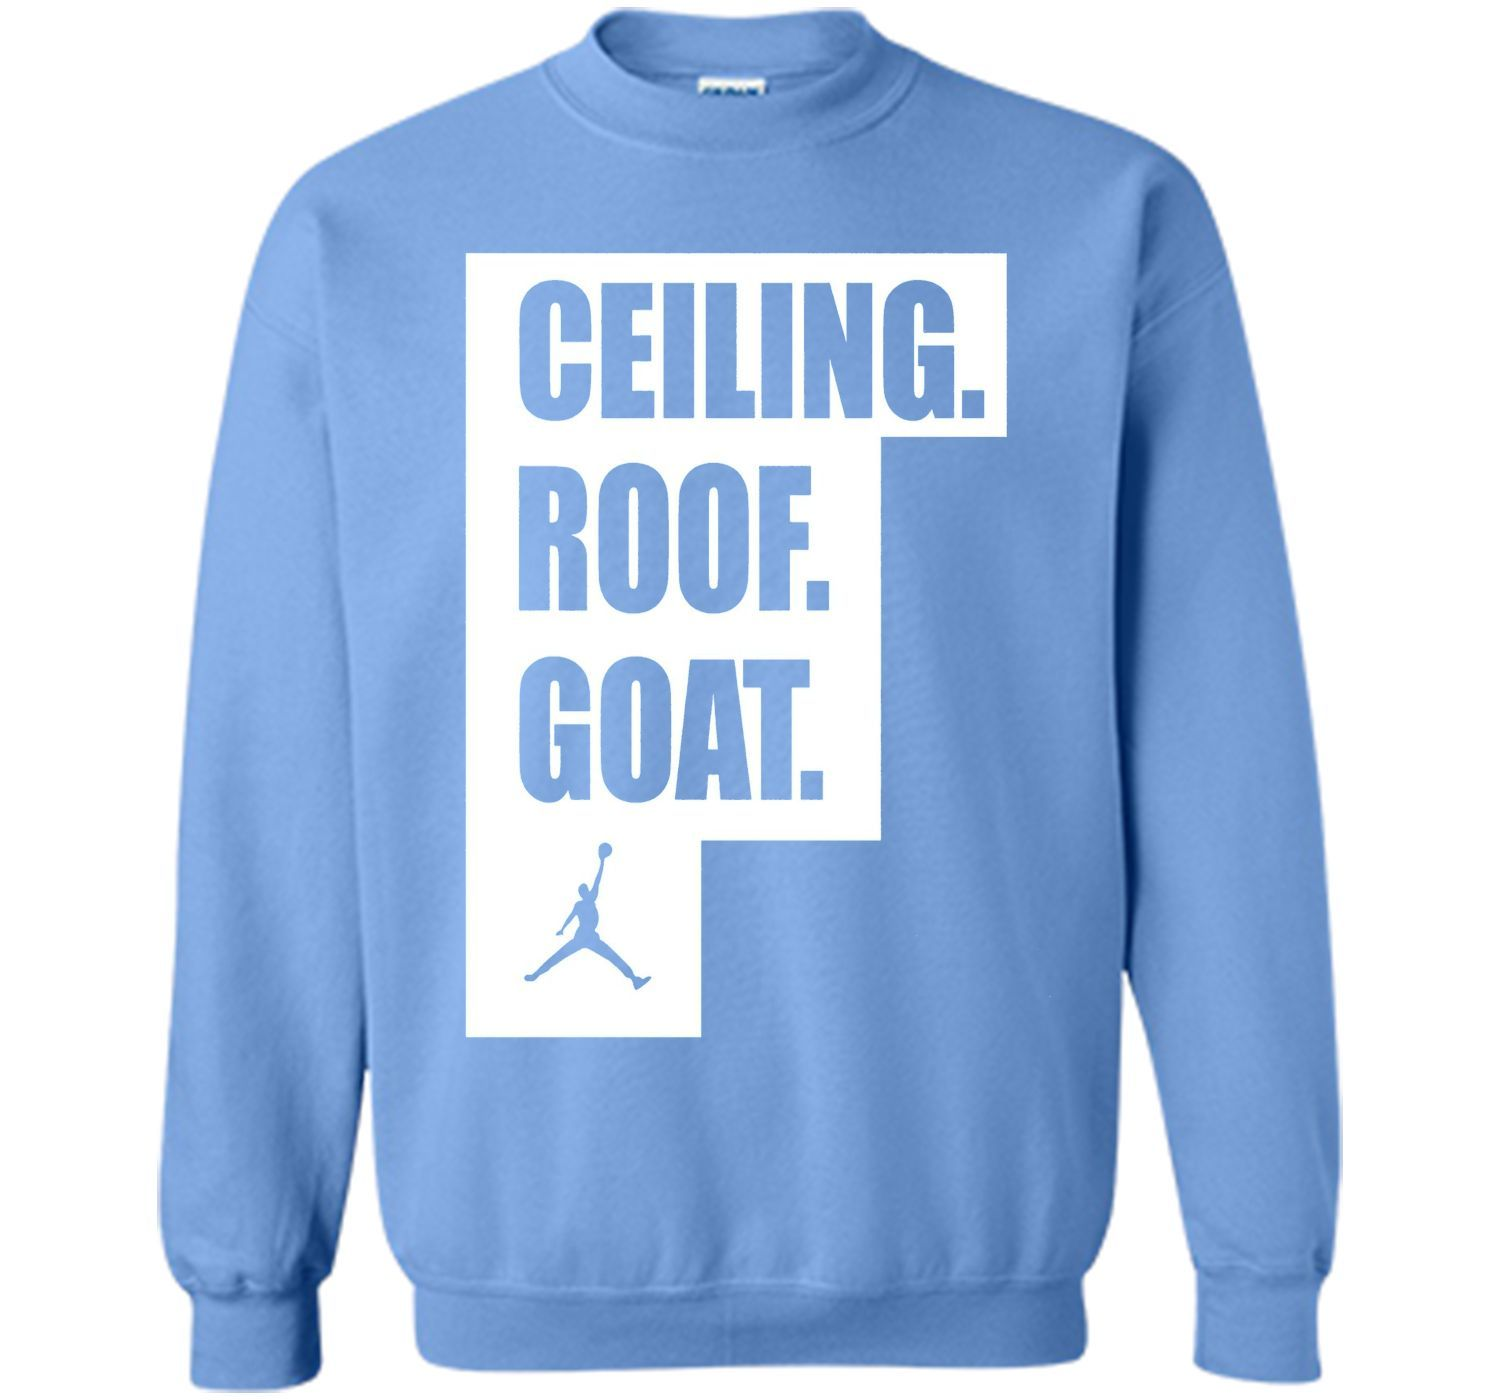 CEILING ROOF GOAT SHIRT | Products | Pinterest | Products